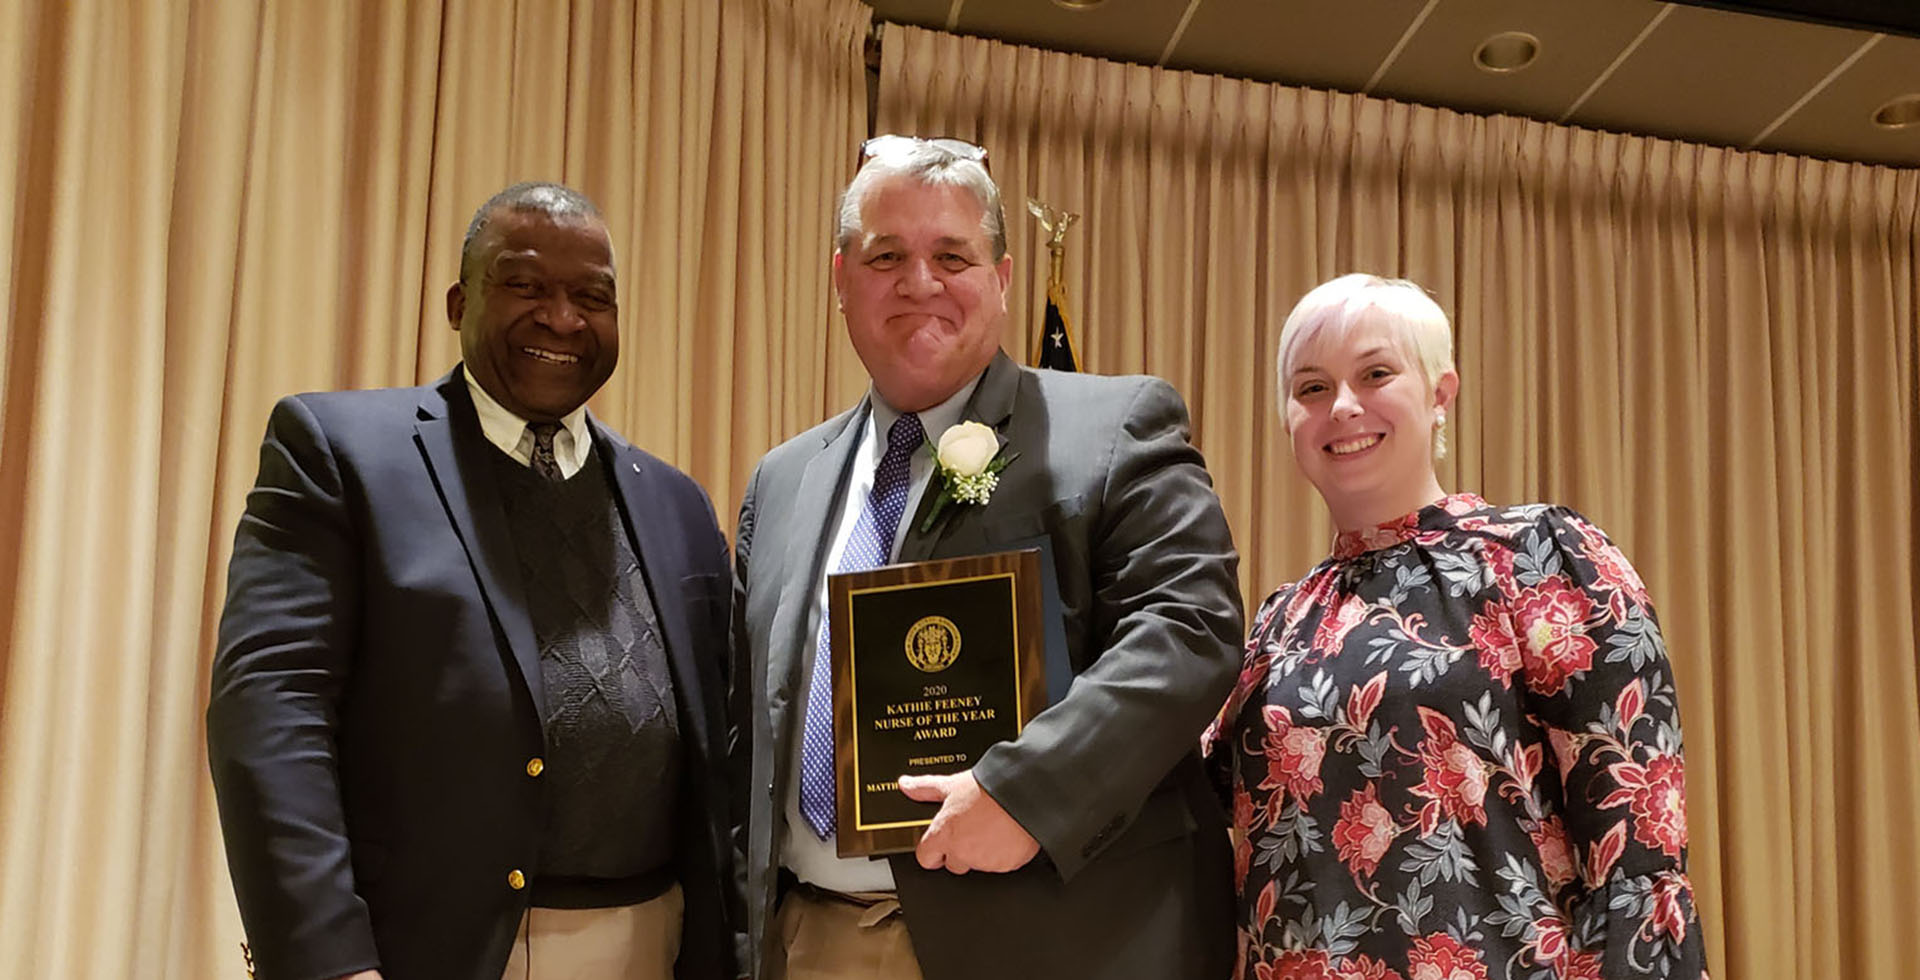 Community members recognized at awards banquet